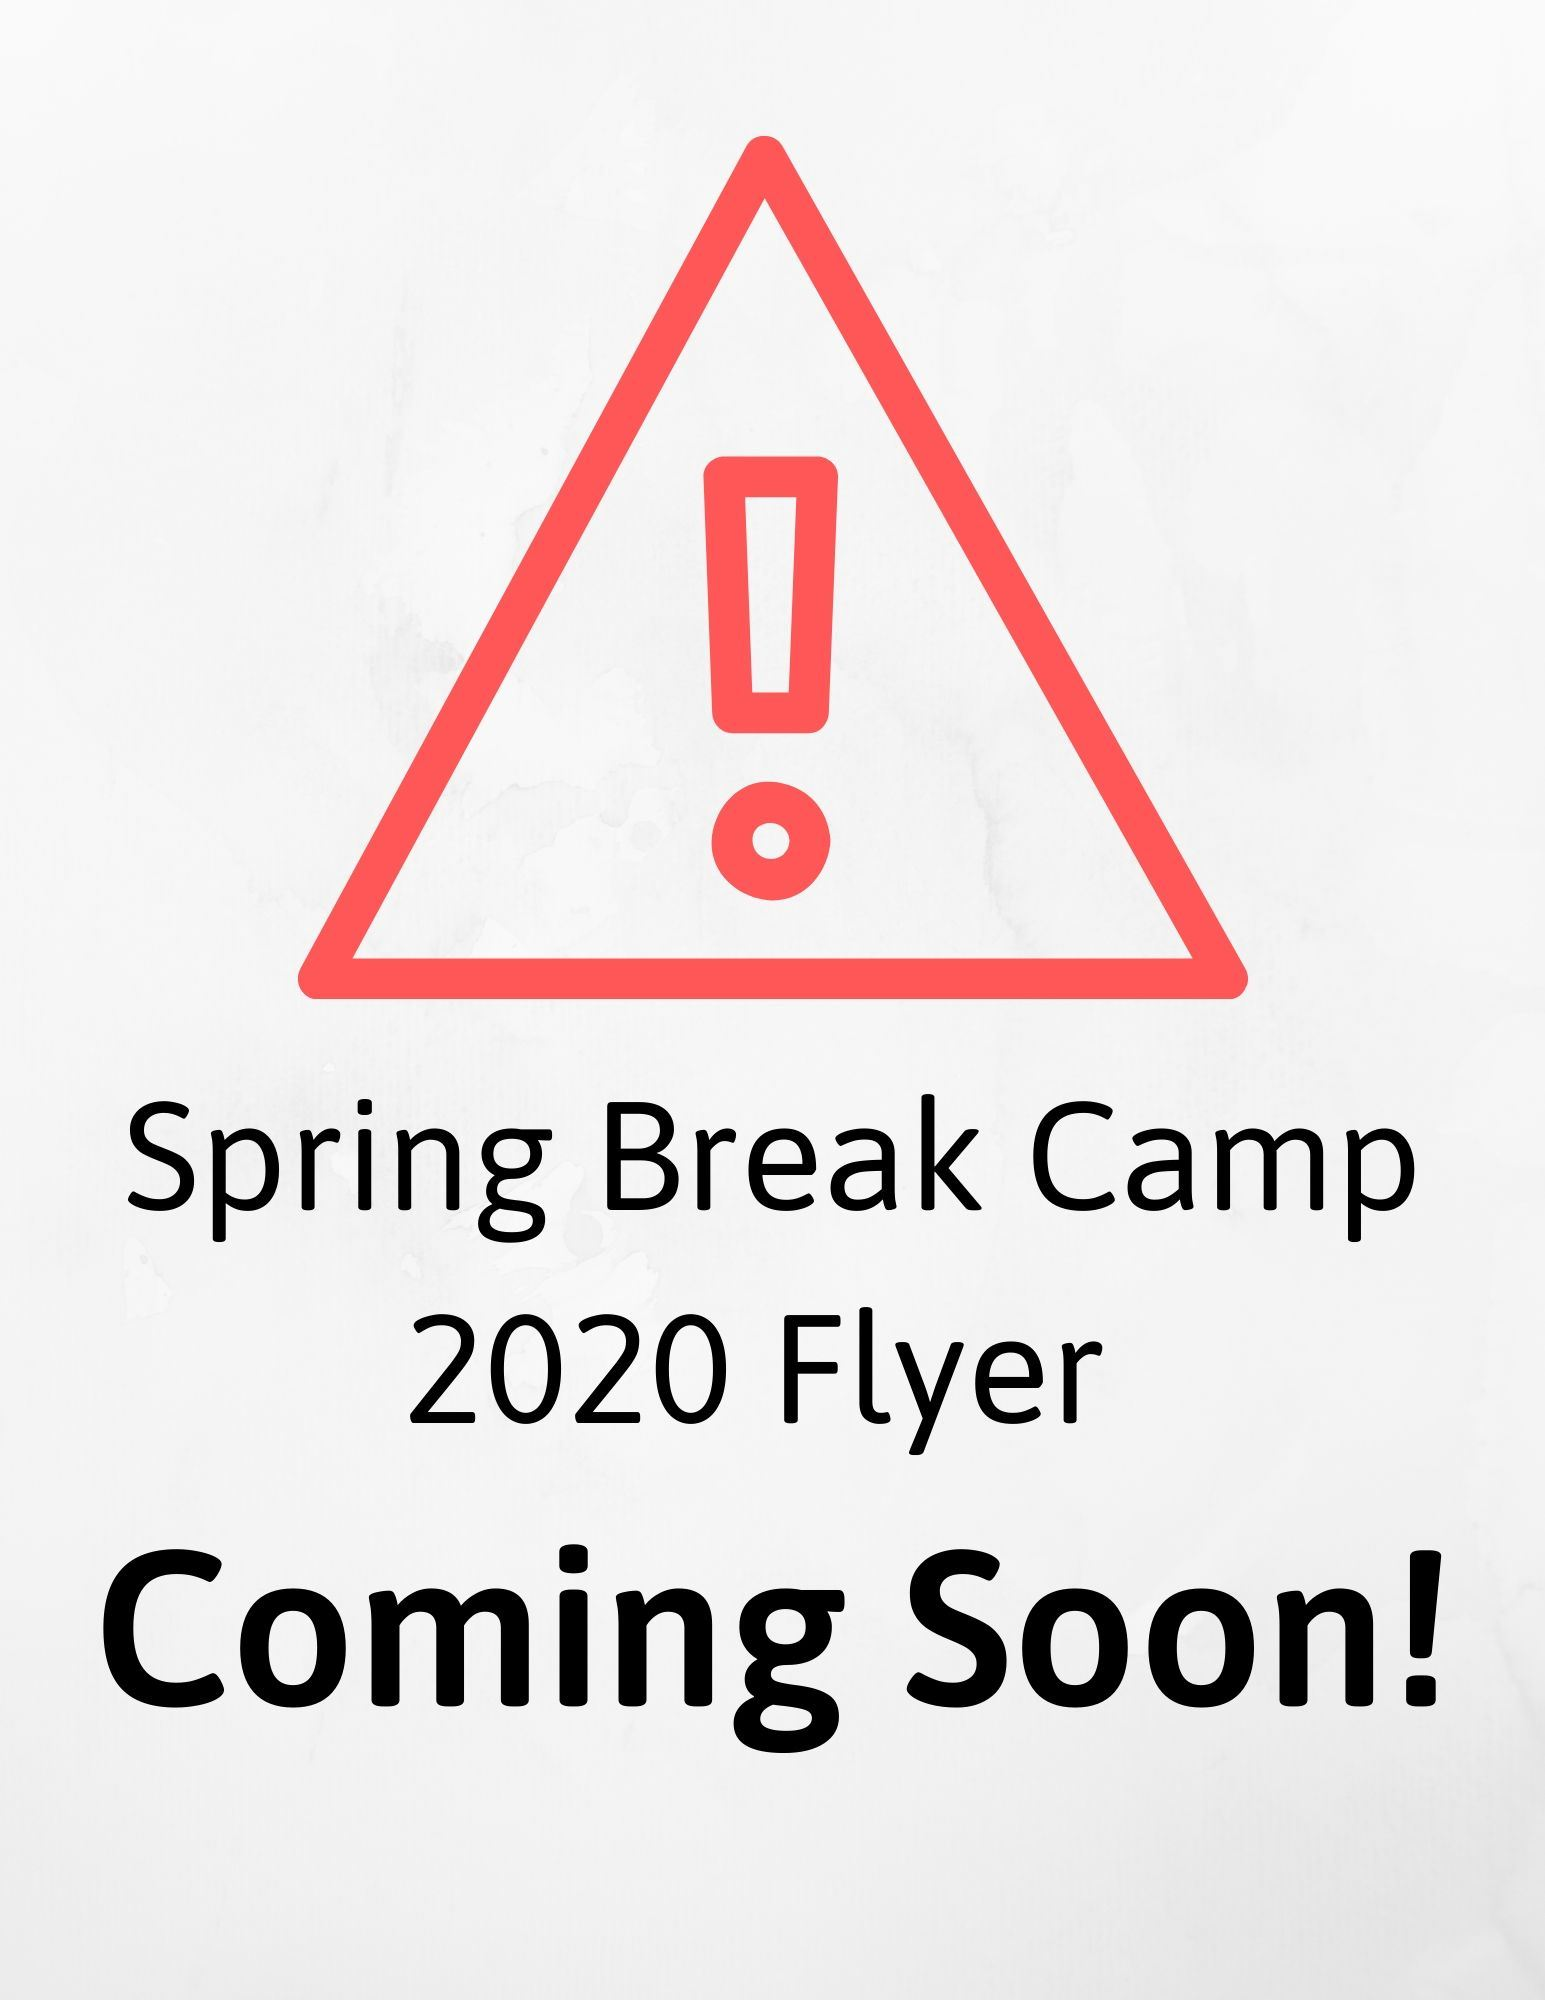 Spring Break Camp 2020 Flyer Coming Soon!